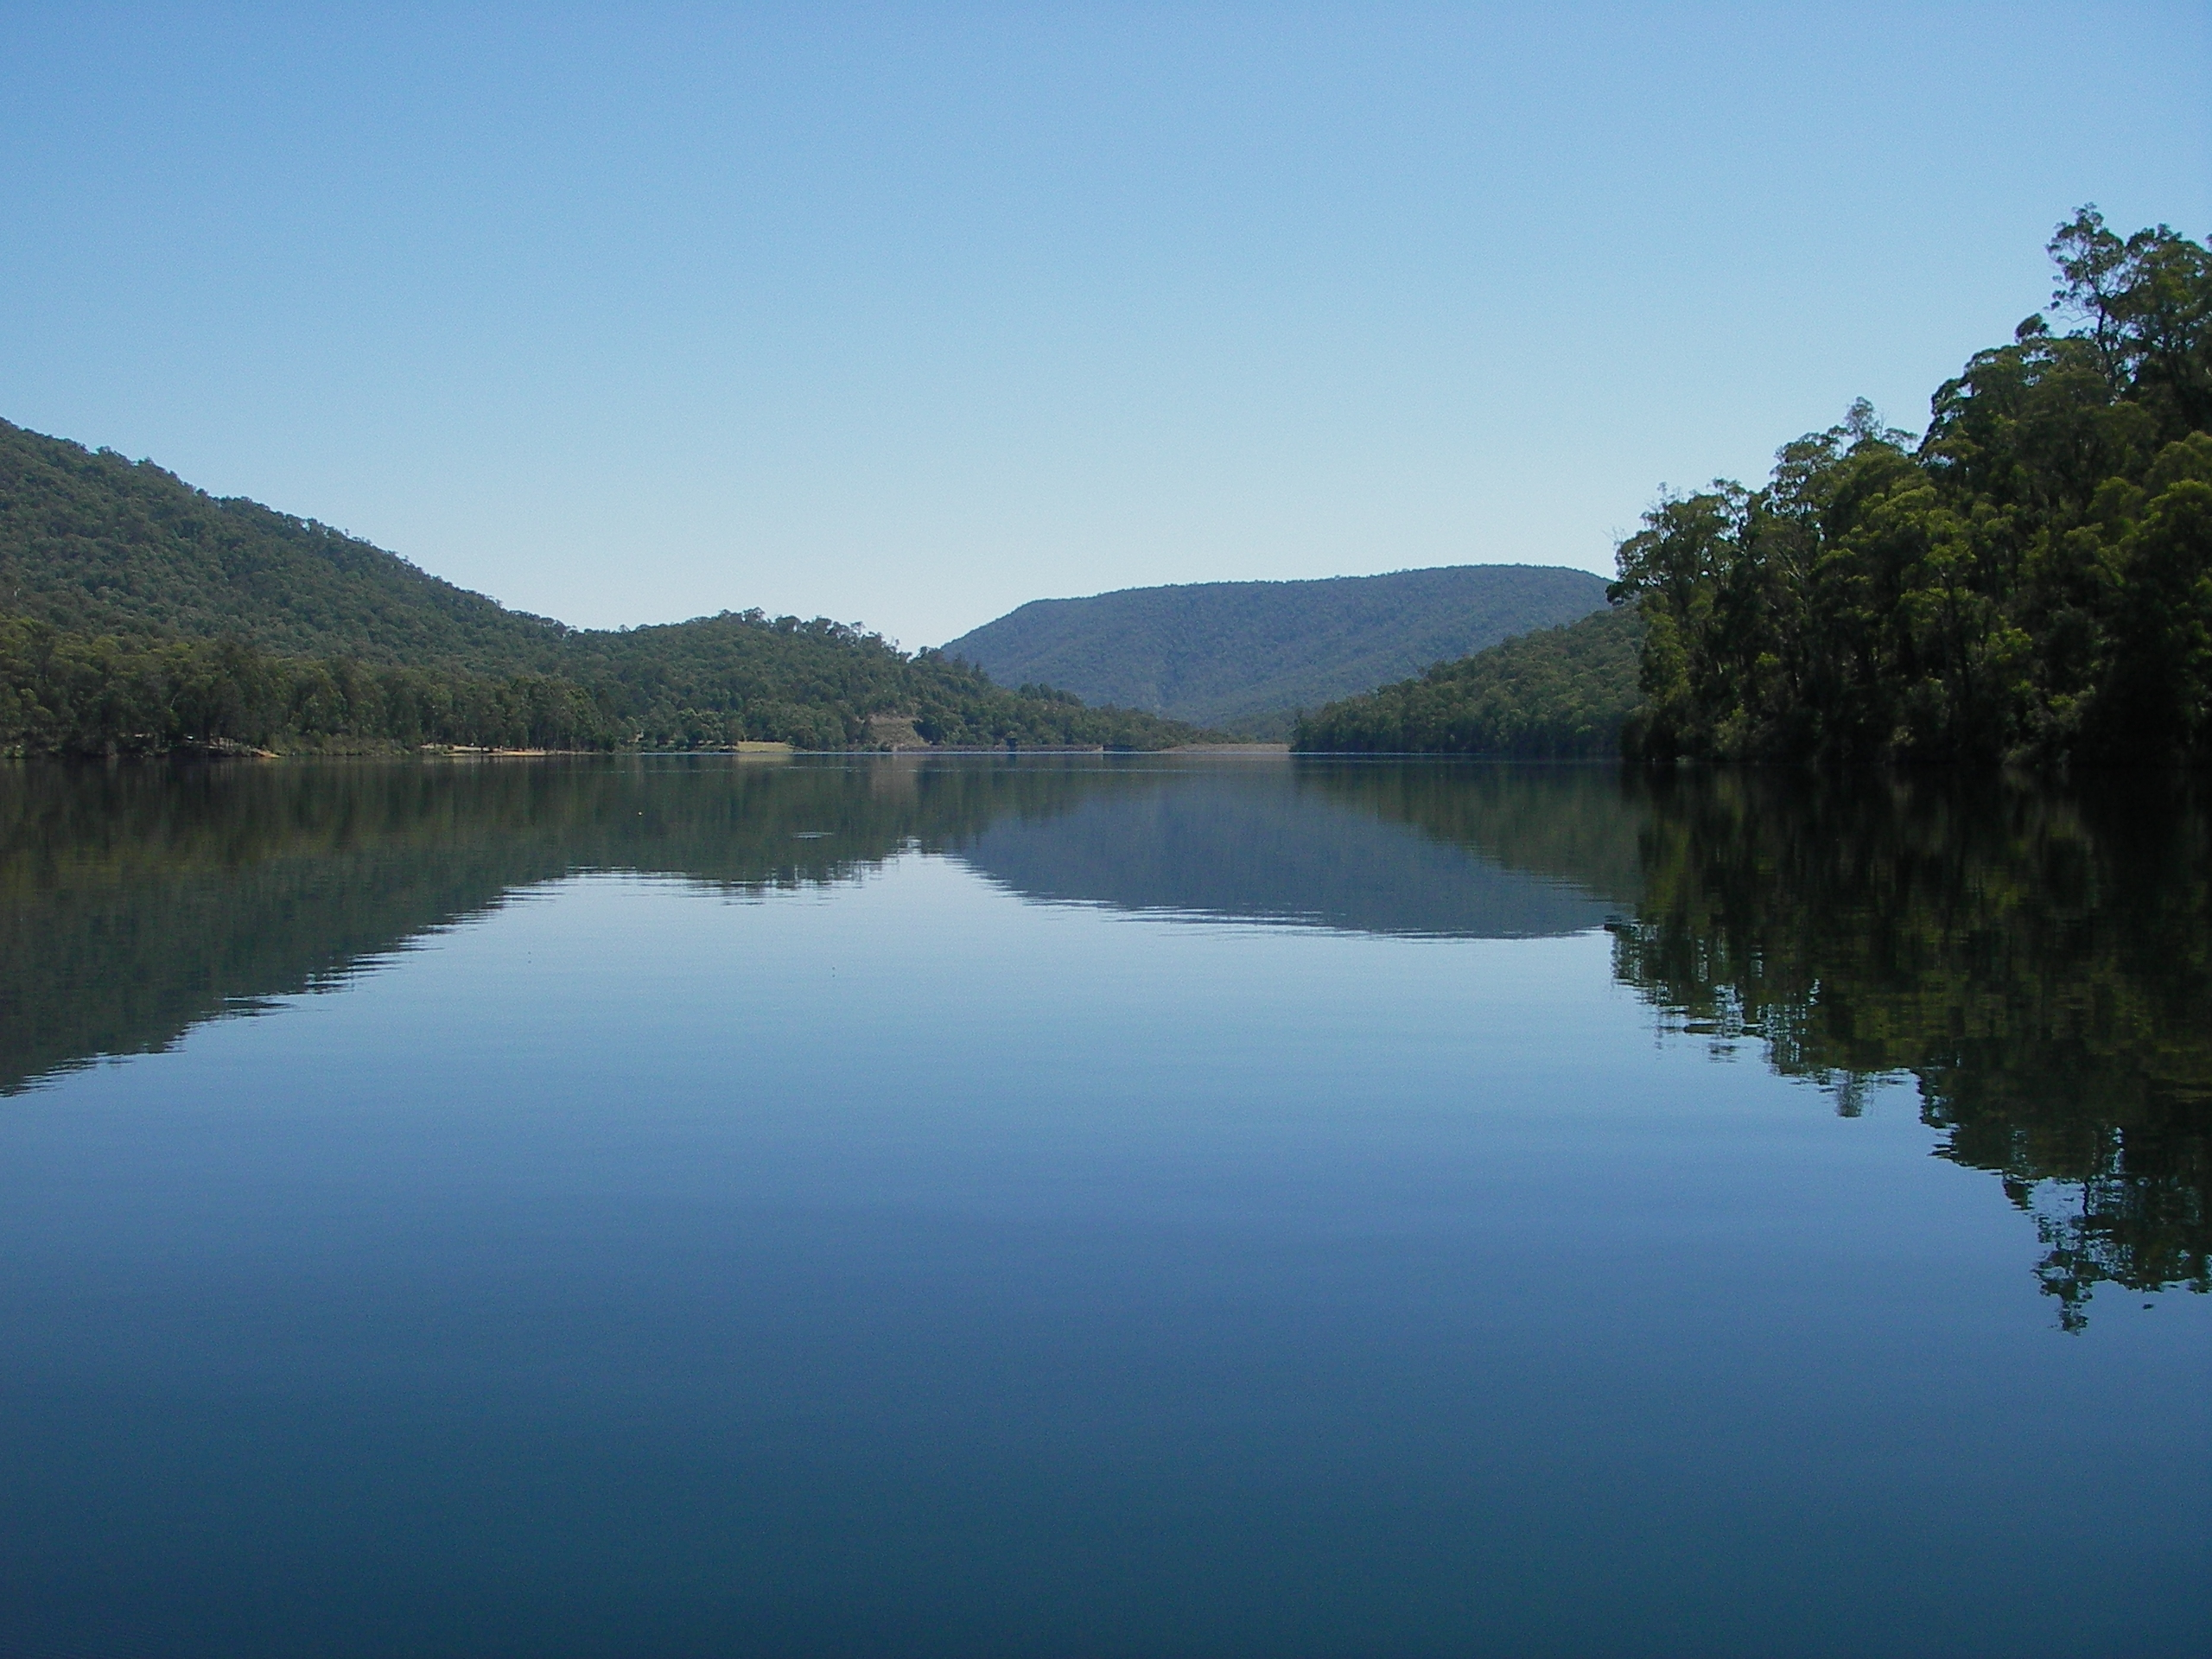 lake william hovell map William Hovell Dam Wikipedia lake william hovell map